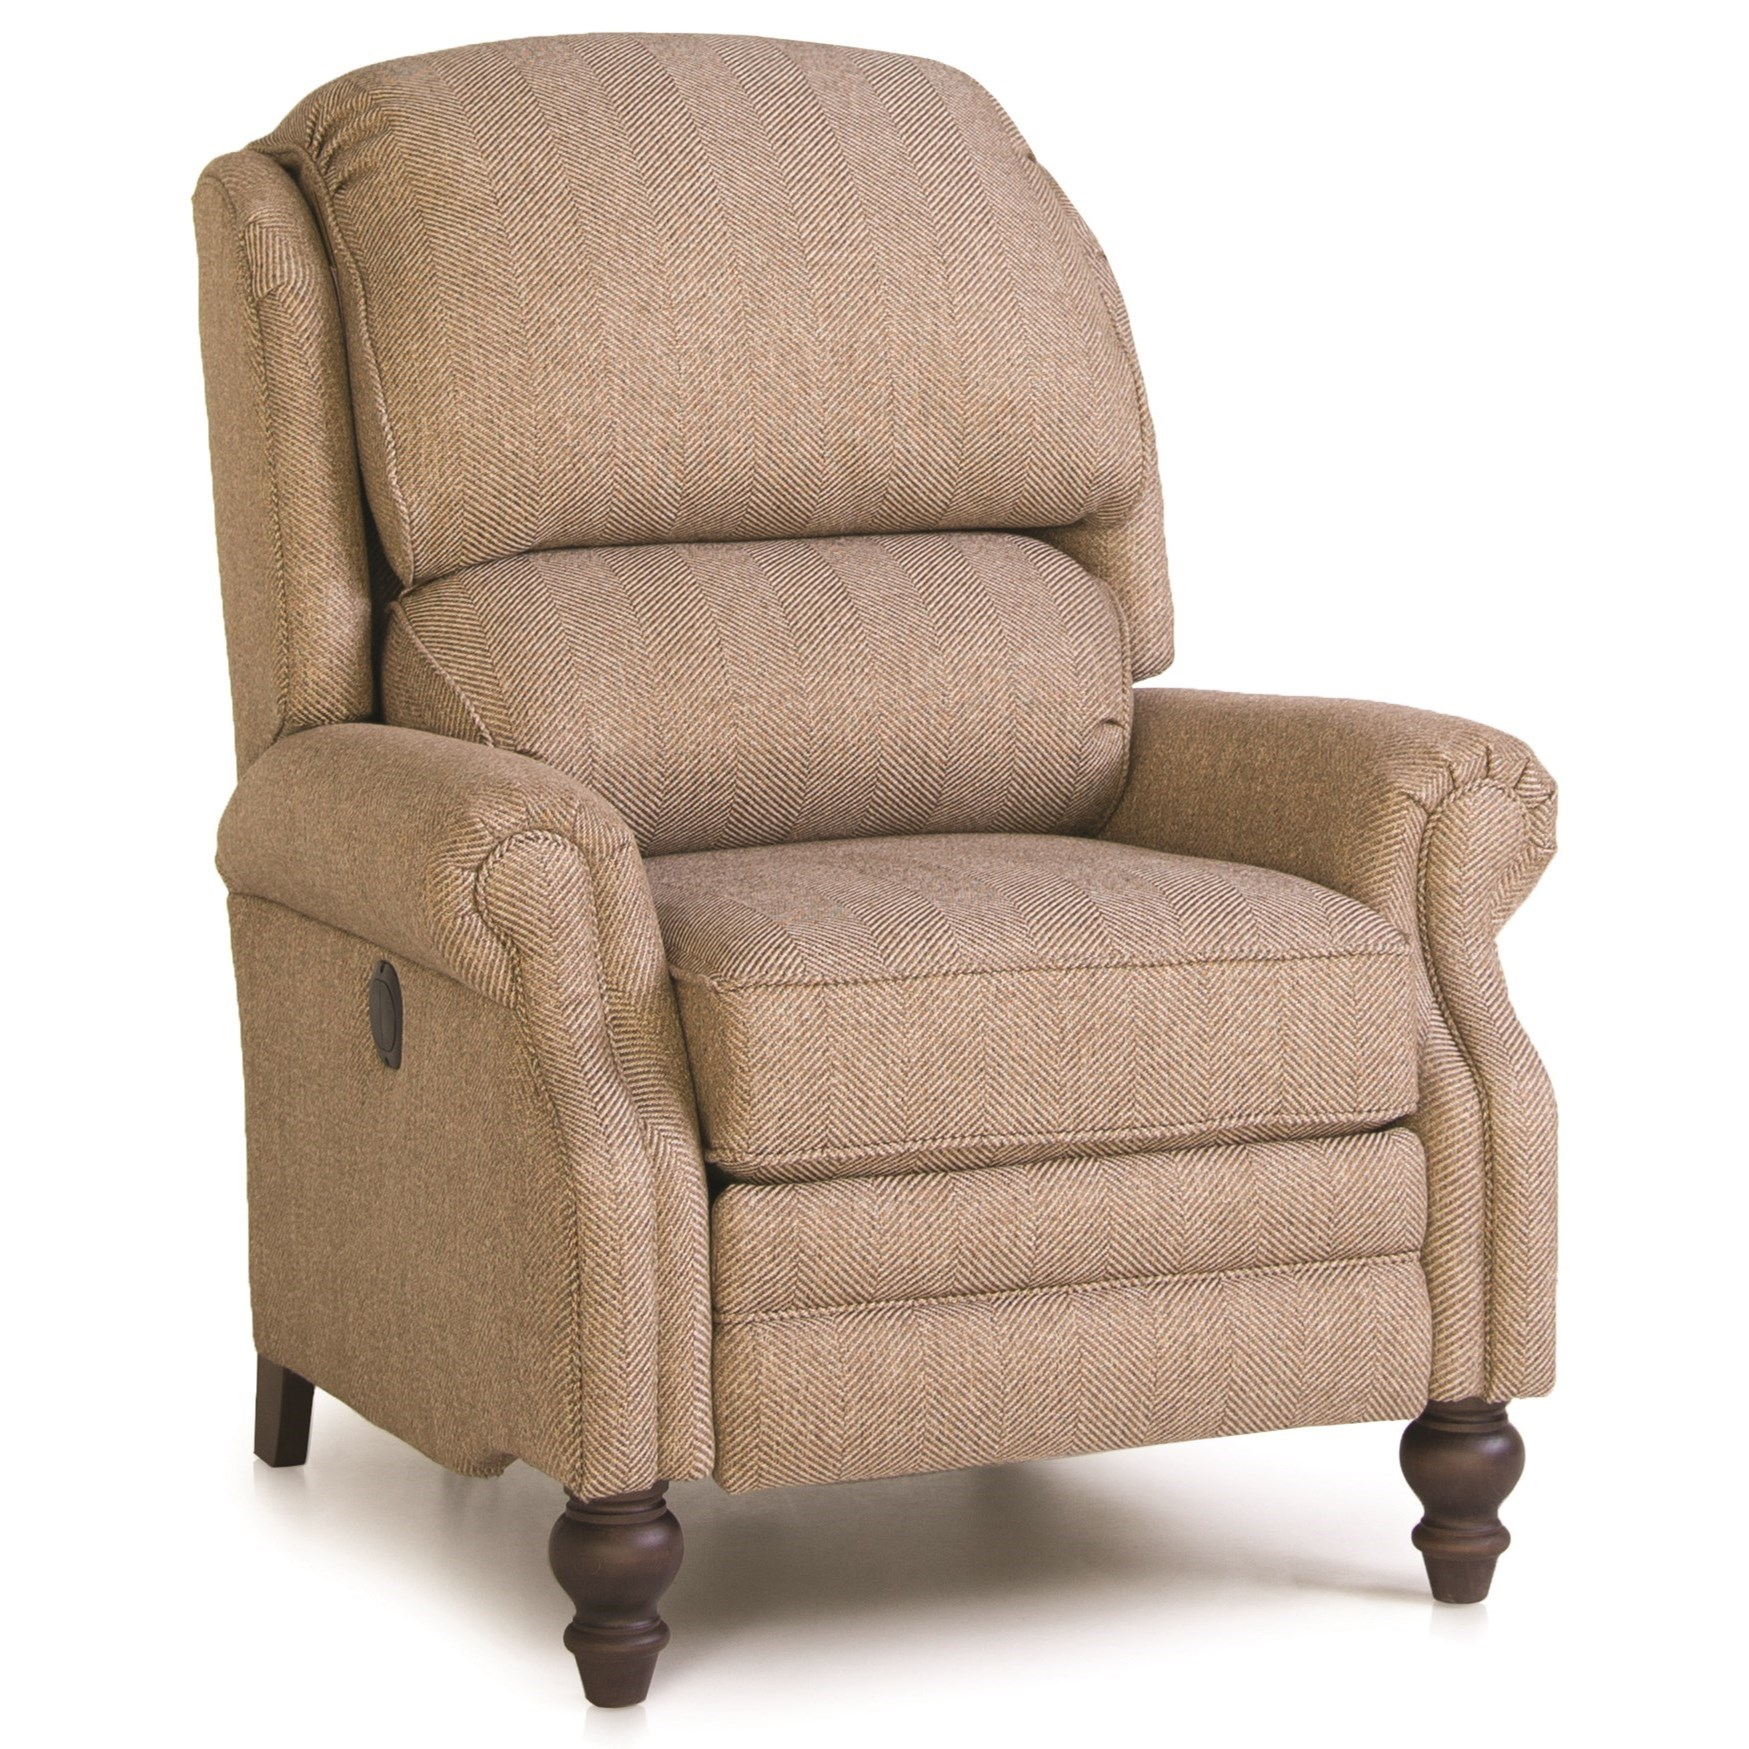 705 Pressback Reclining Chair by Smith Brothers at Westrich Furniture & Appliances